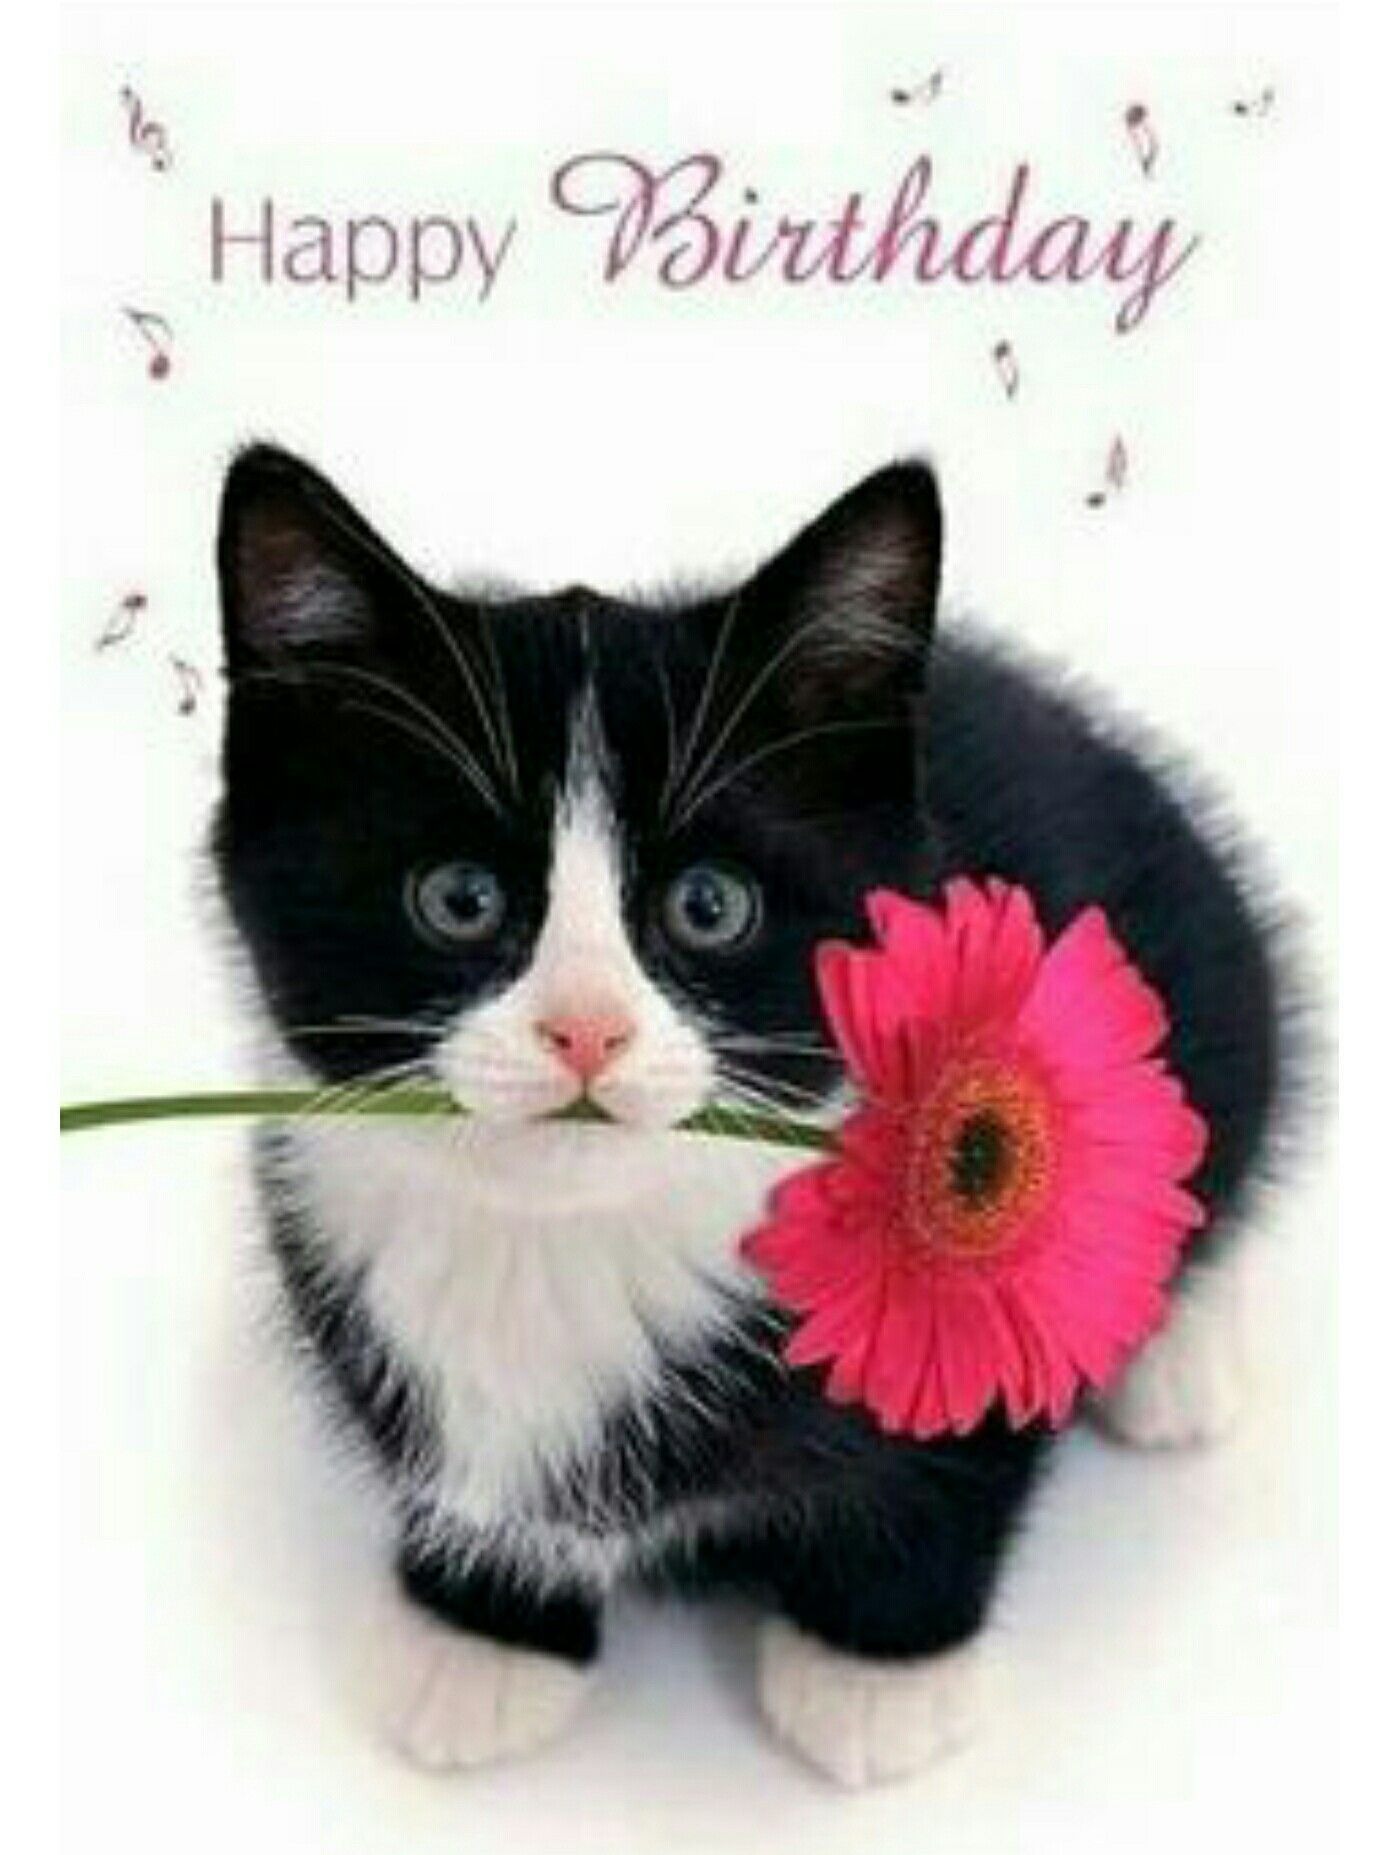 Happy birthday cat #happybirthdayimages | Happy birthday cat ...